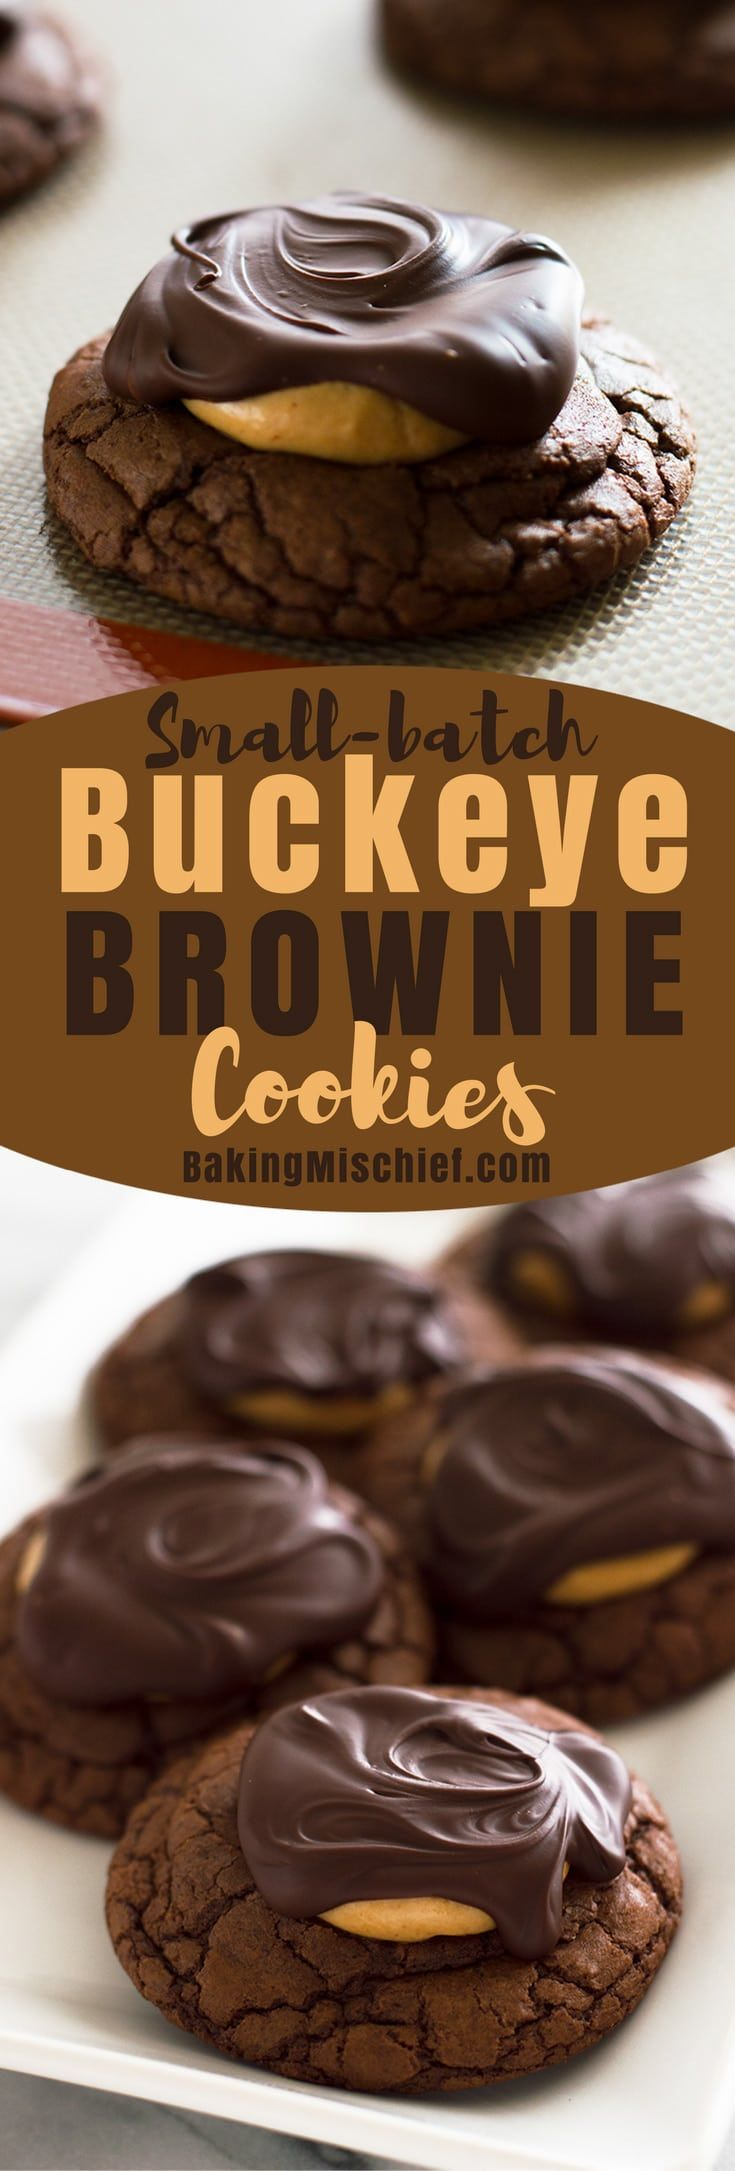 This recipe for six rich and amazing Buckeye Brownie Cookies starts with a fudgy chocolate cookie base, gets a sweet peanut butter center, and is topped with melted chocolate. From BakingMischief.com